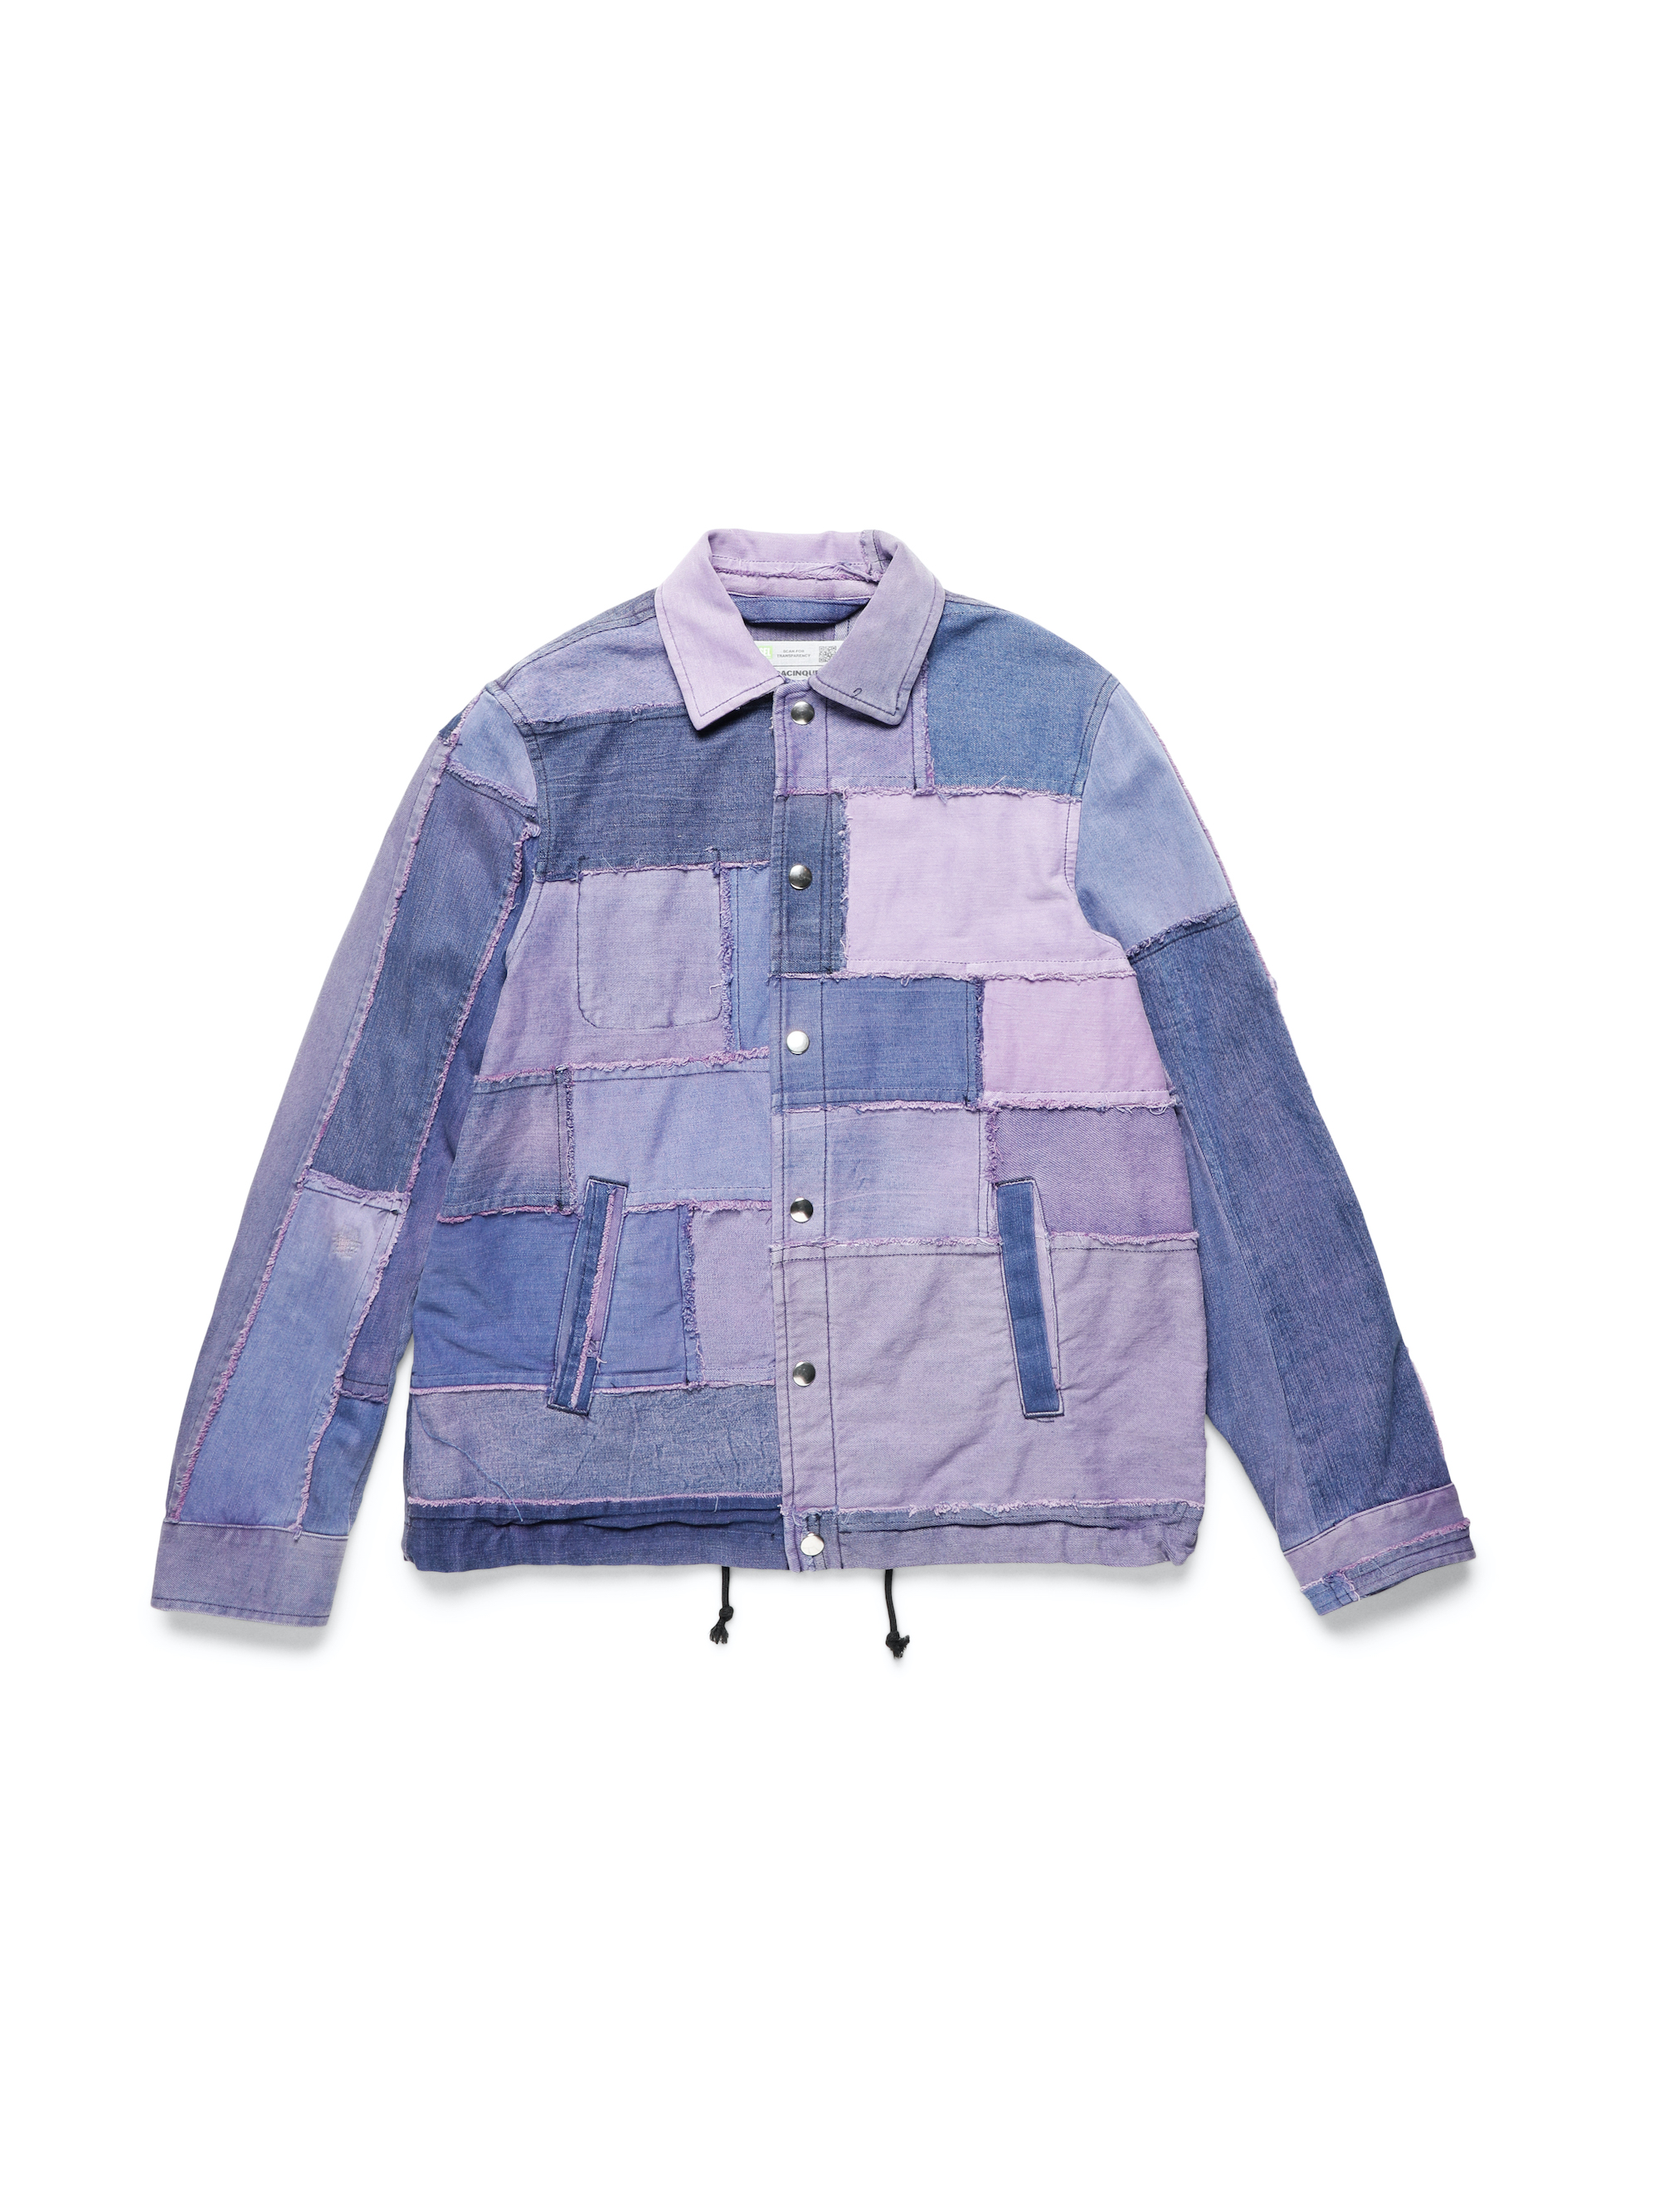 DIESEL UPCYCLING FOR 55DS Purple demin jacket